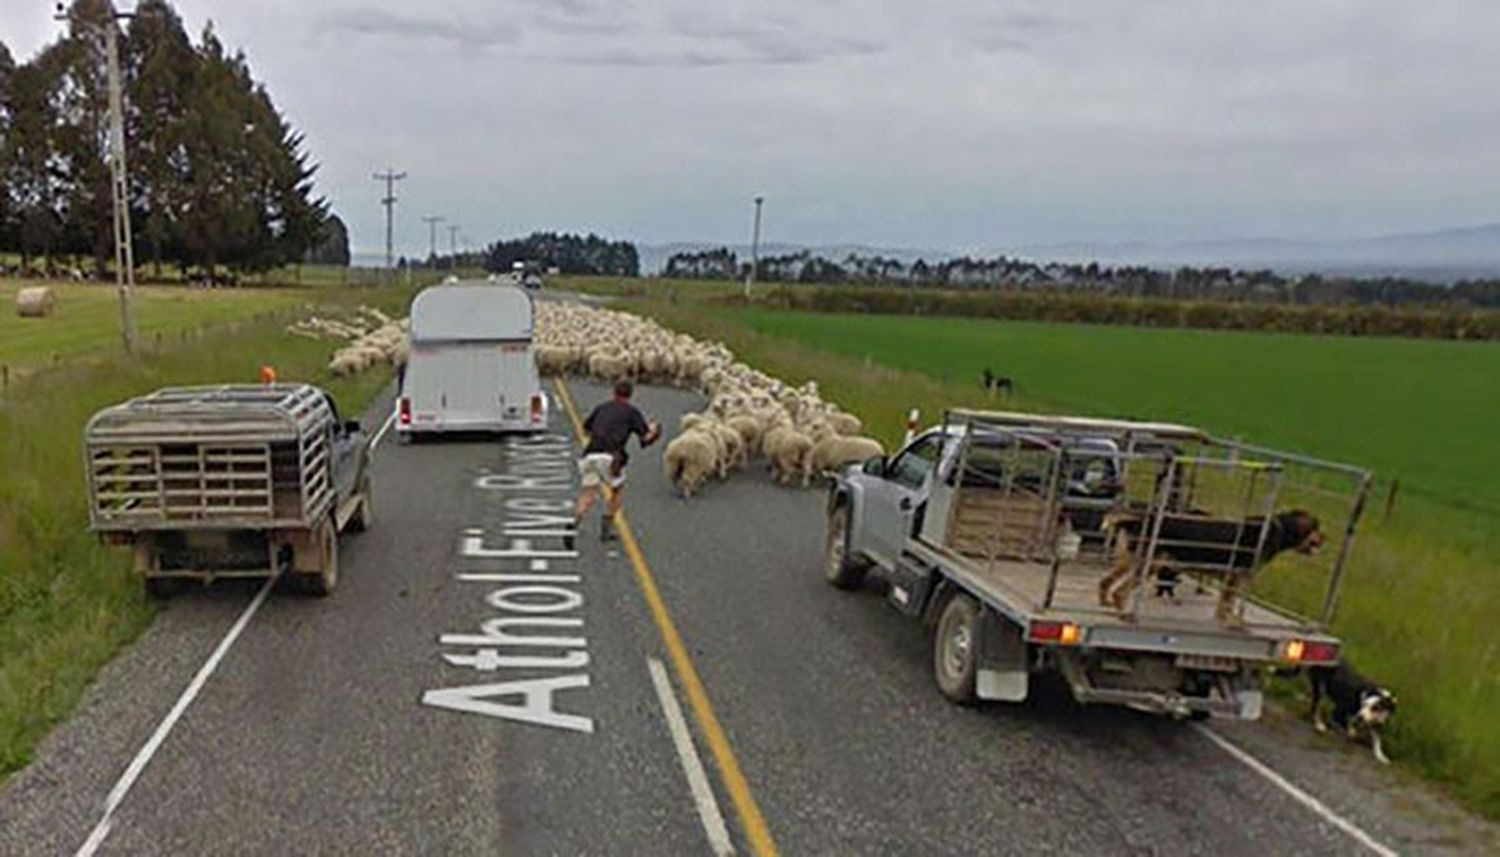 animaux-photos-by-Google-Street-View-moutons